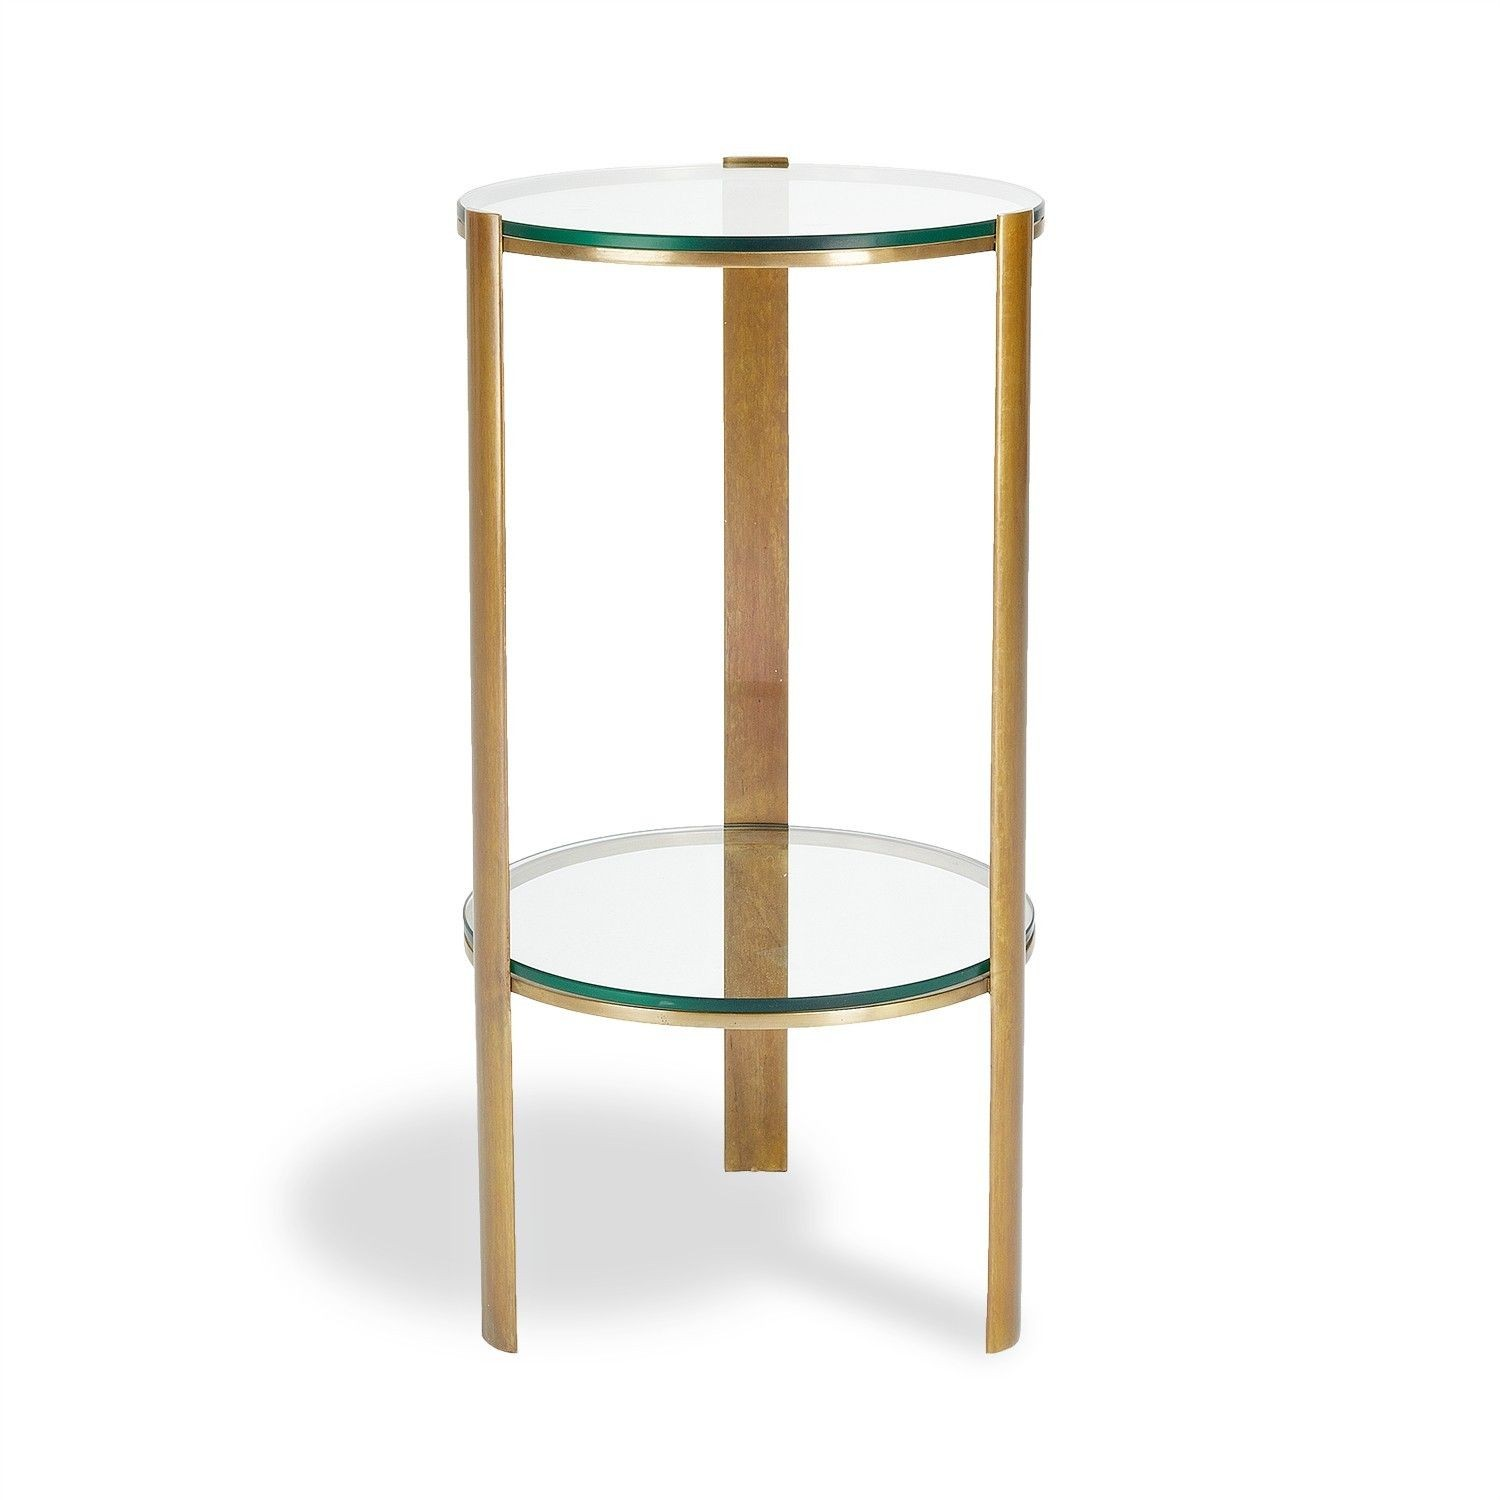 black and glass end tables small tall table corner with metal family room inch white accent full size beach themed home decor jcpenney furniture clearance gold side nesting ikea